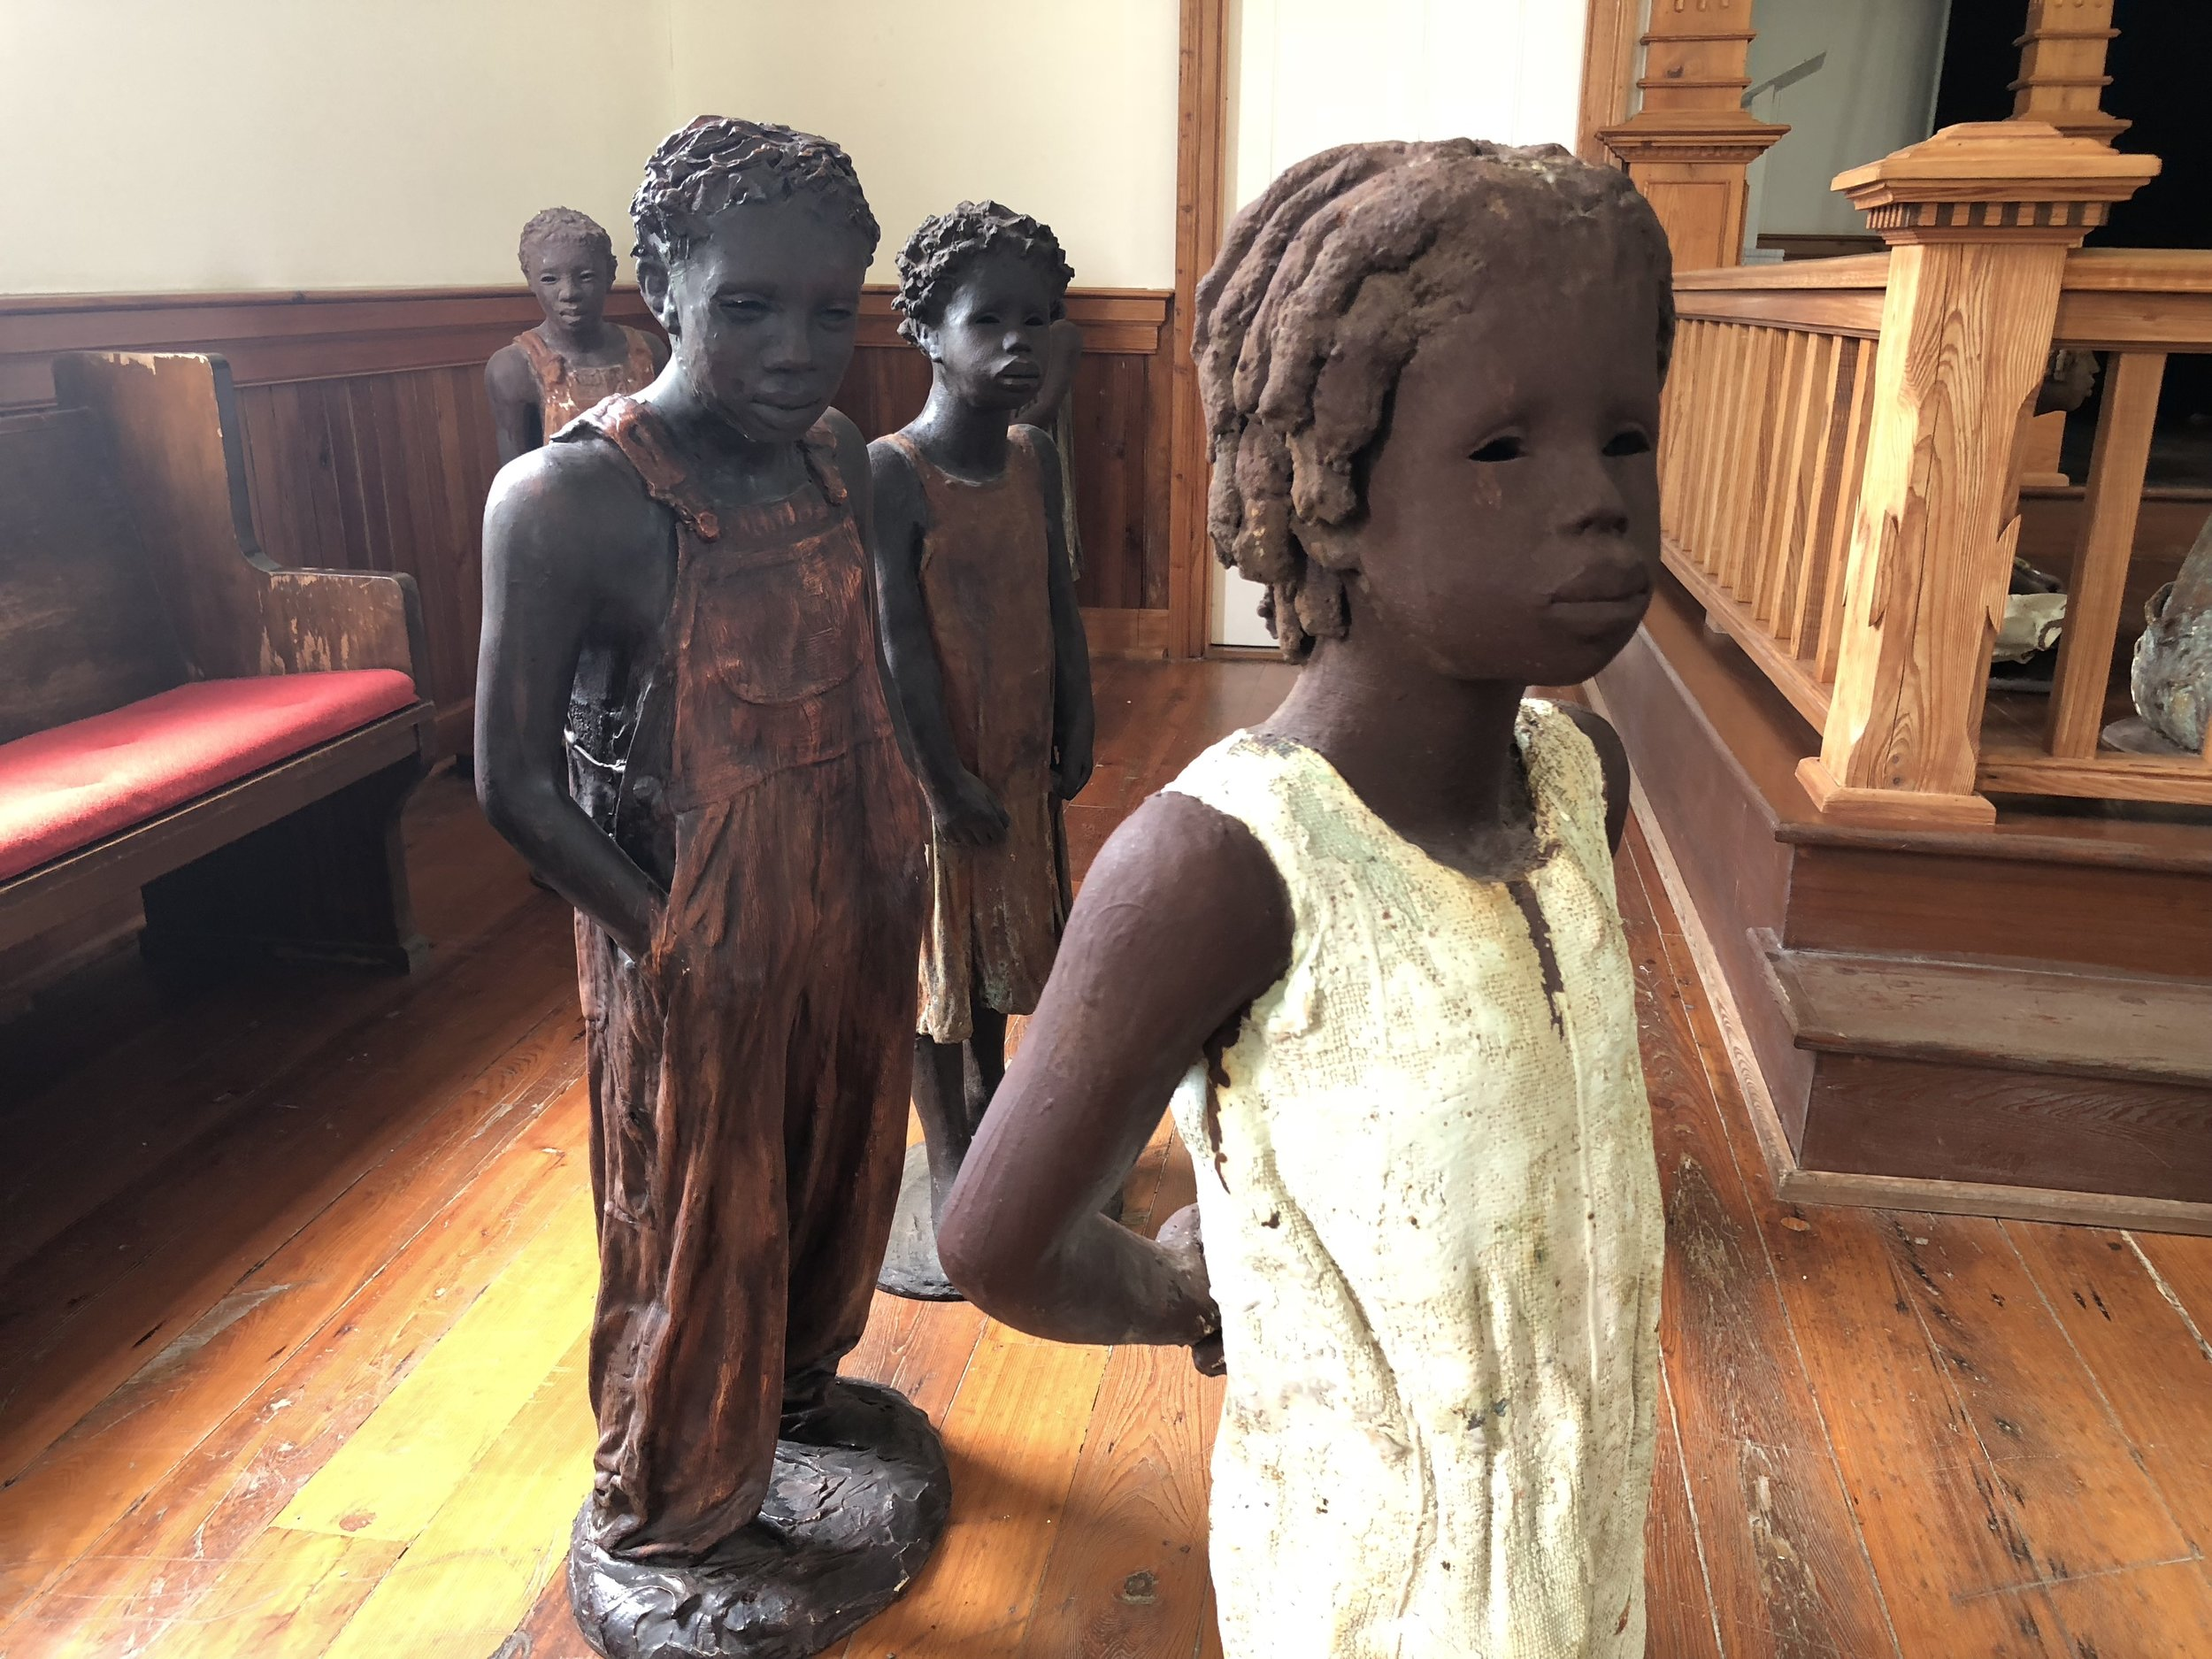 The statues of slave children inside the church